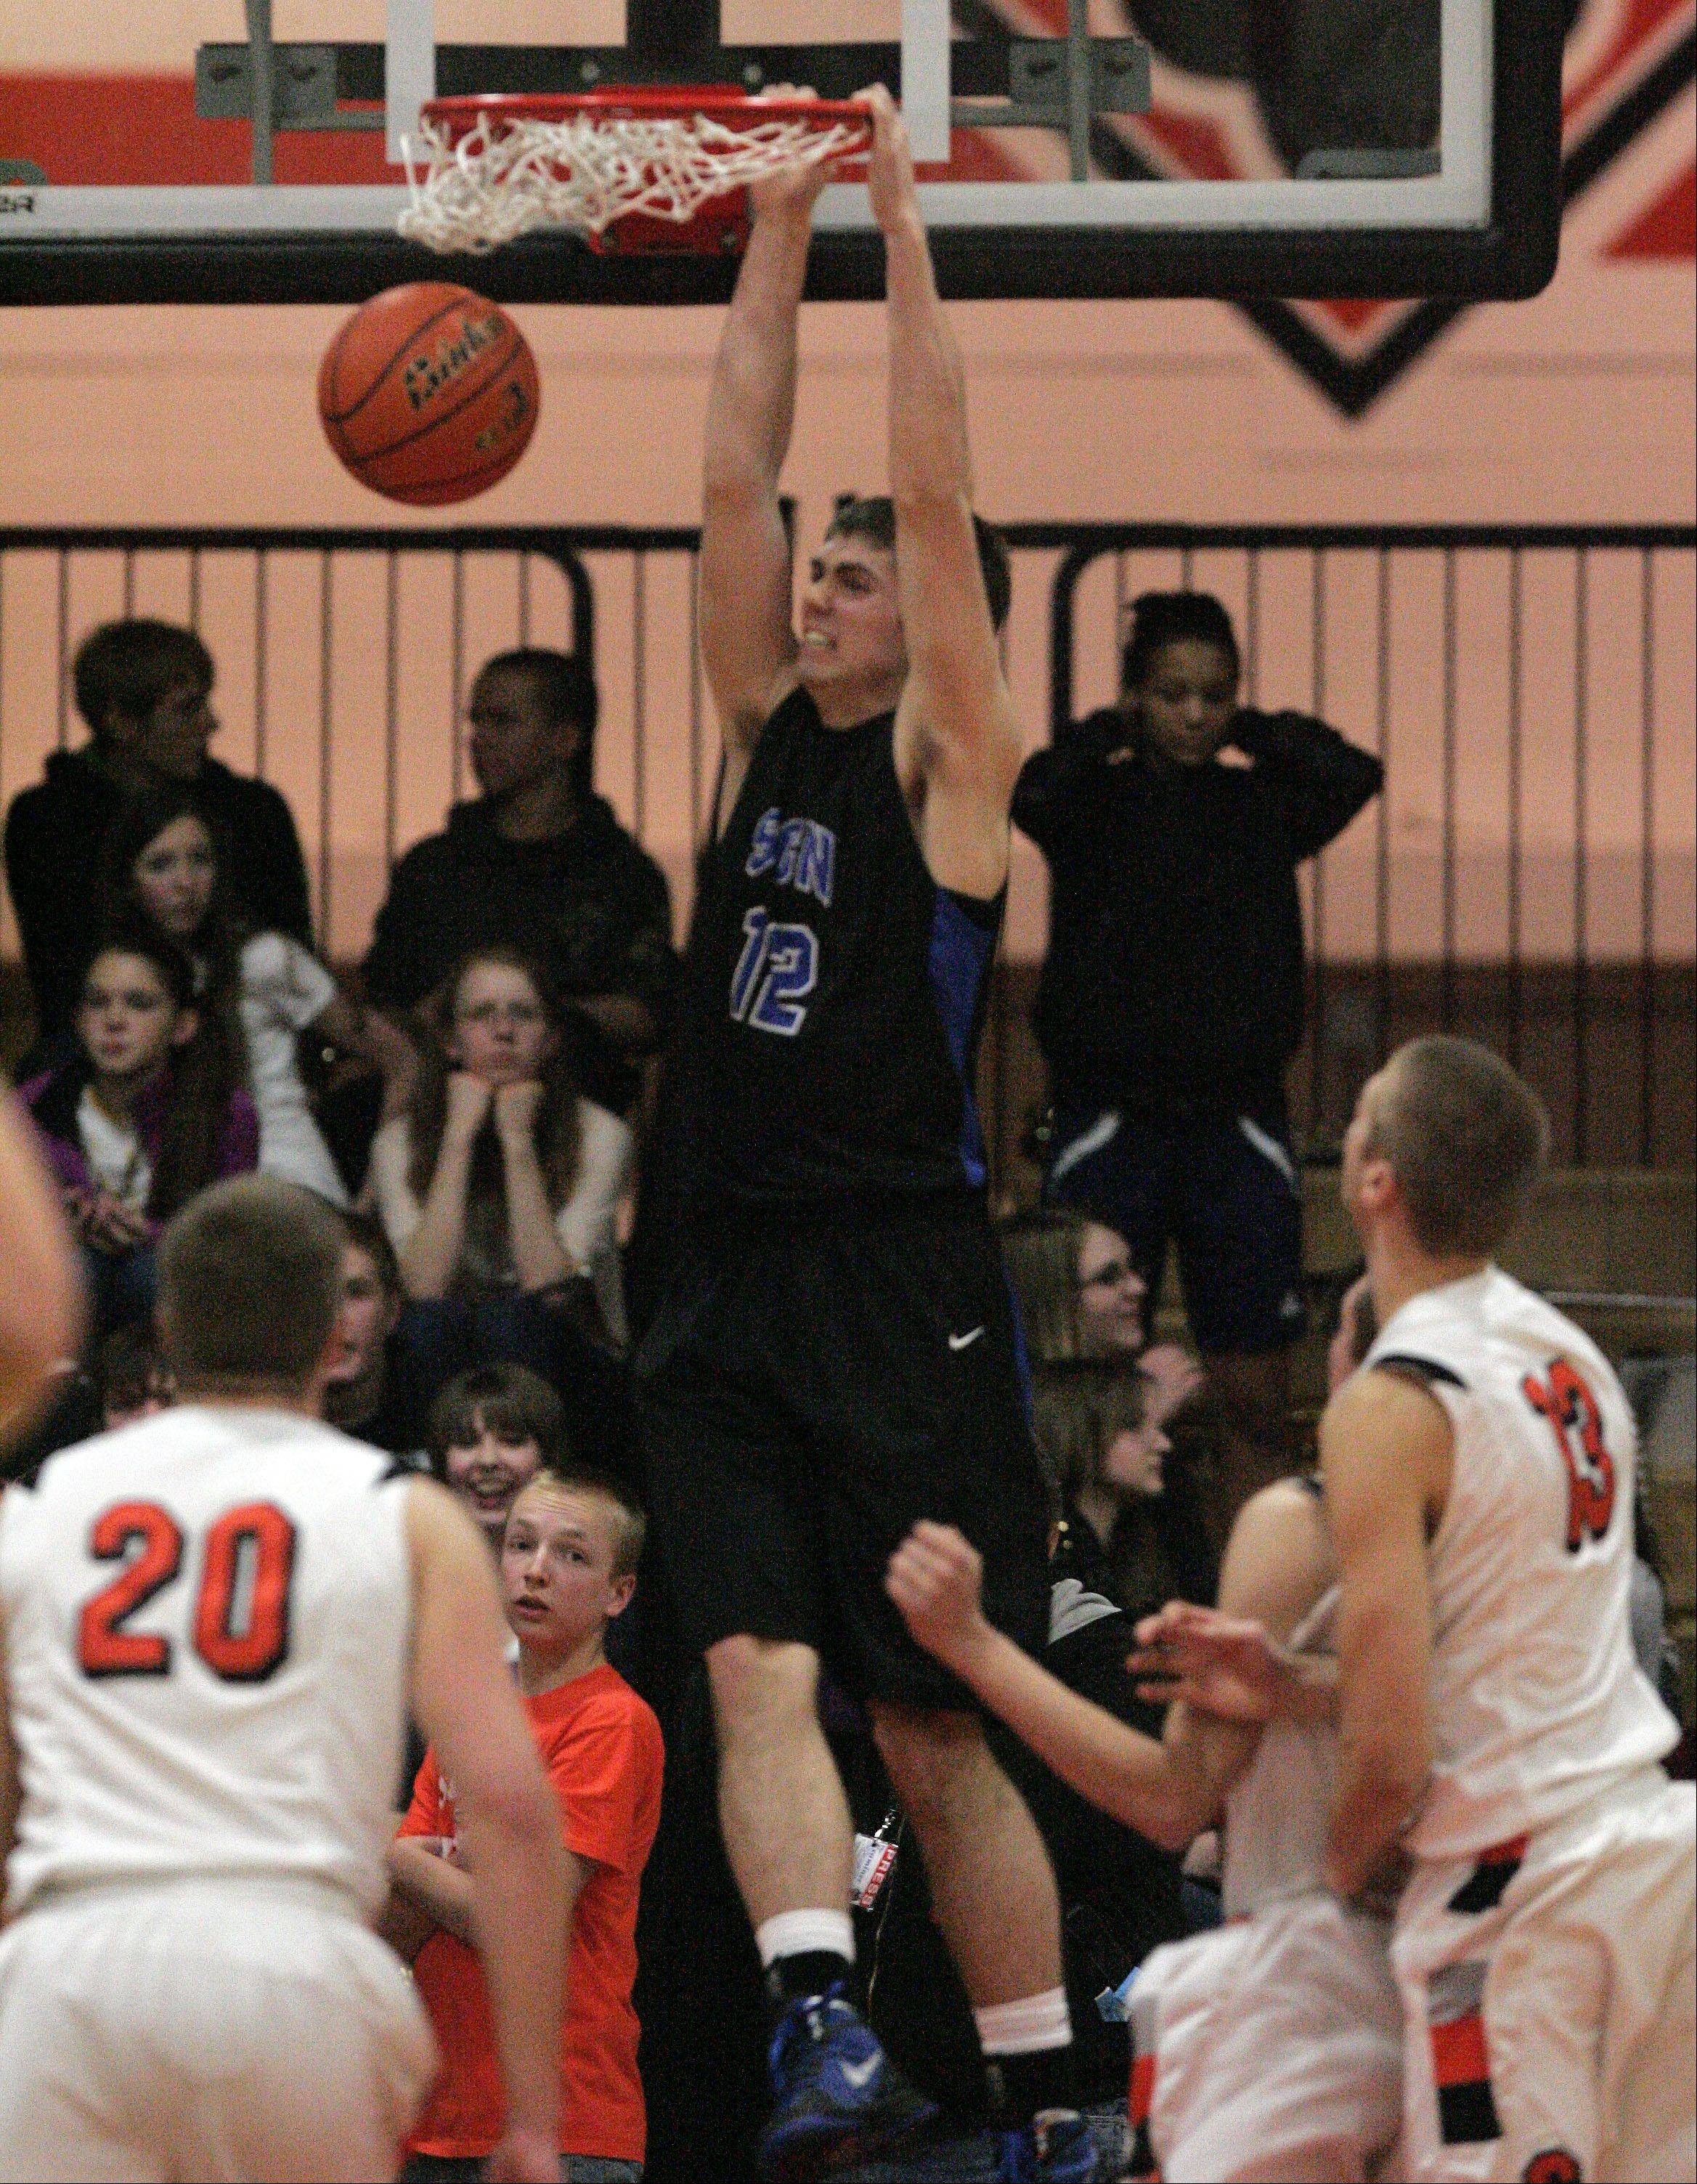 St. Charles North's Quinten Payne throws home a dunk at St. Charles East.